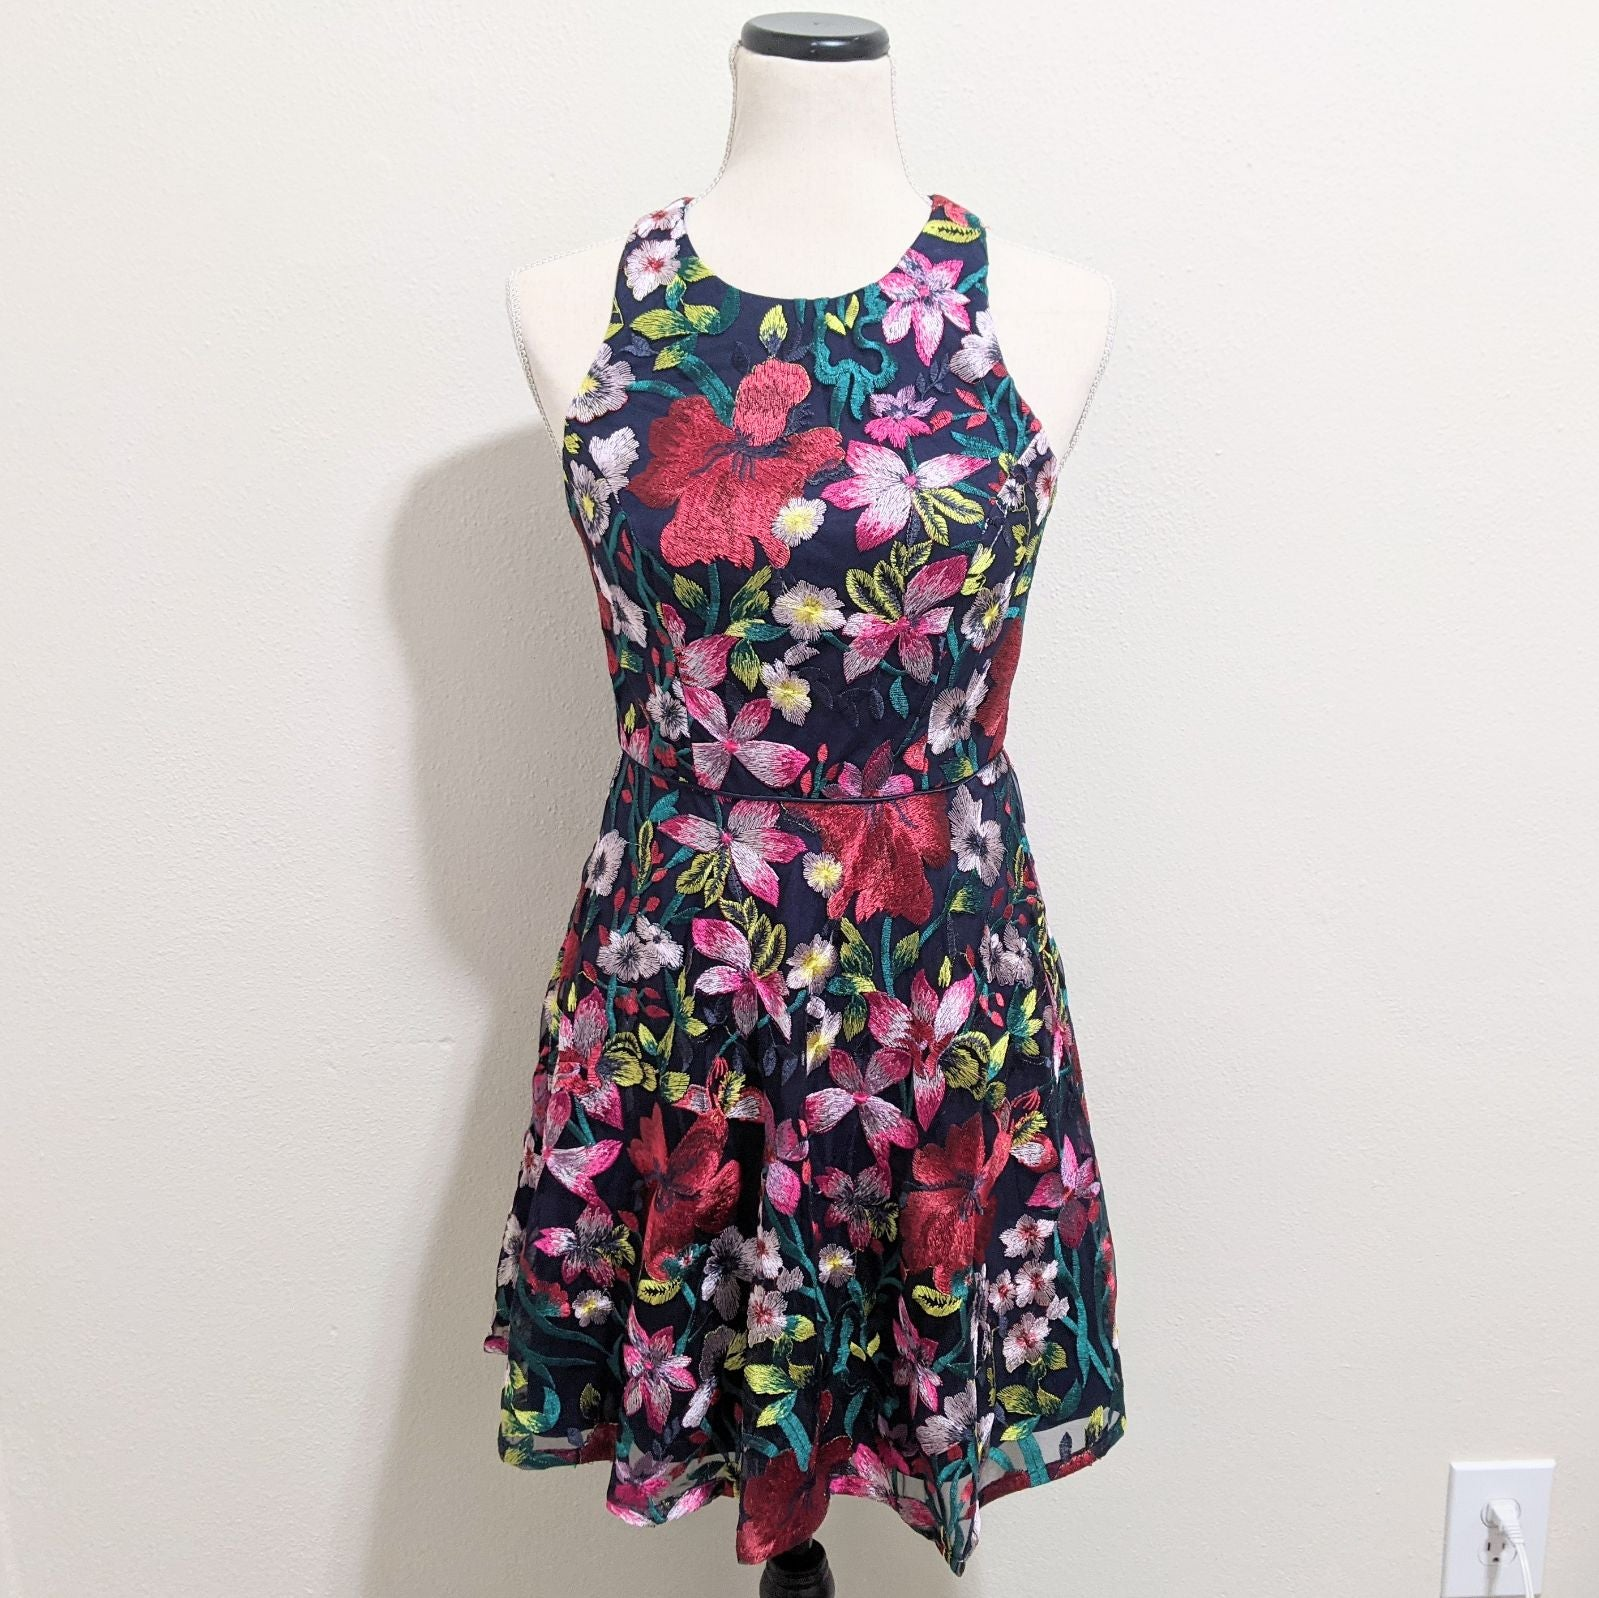 Gianni Bini Floral Embroidered Dress